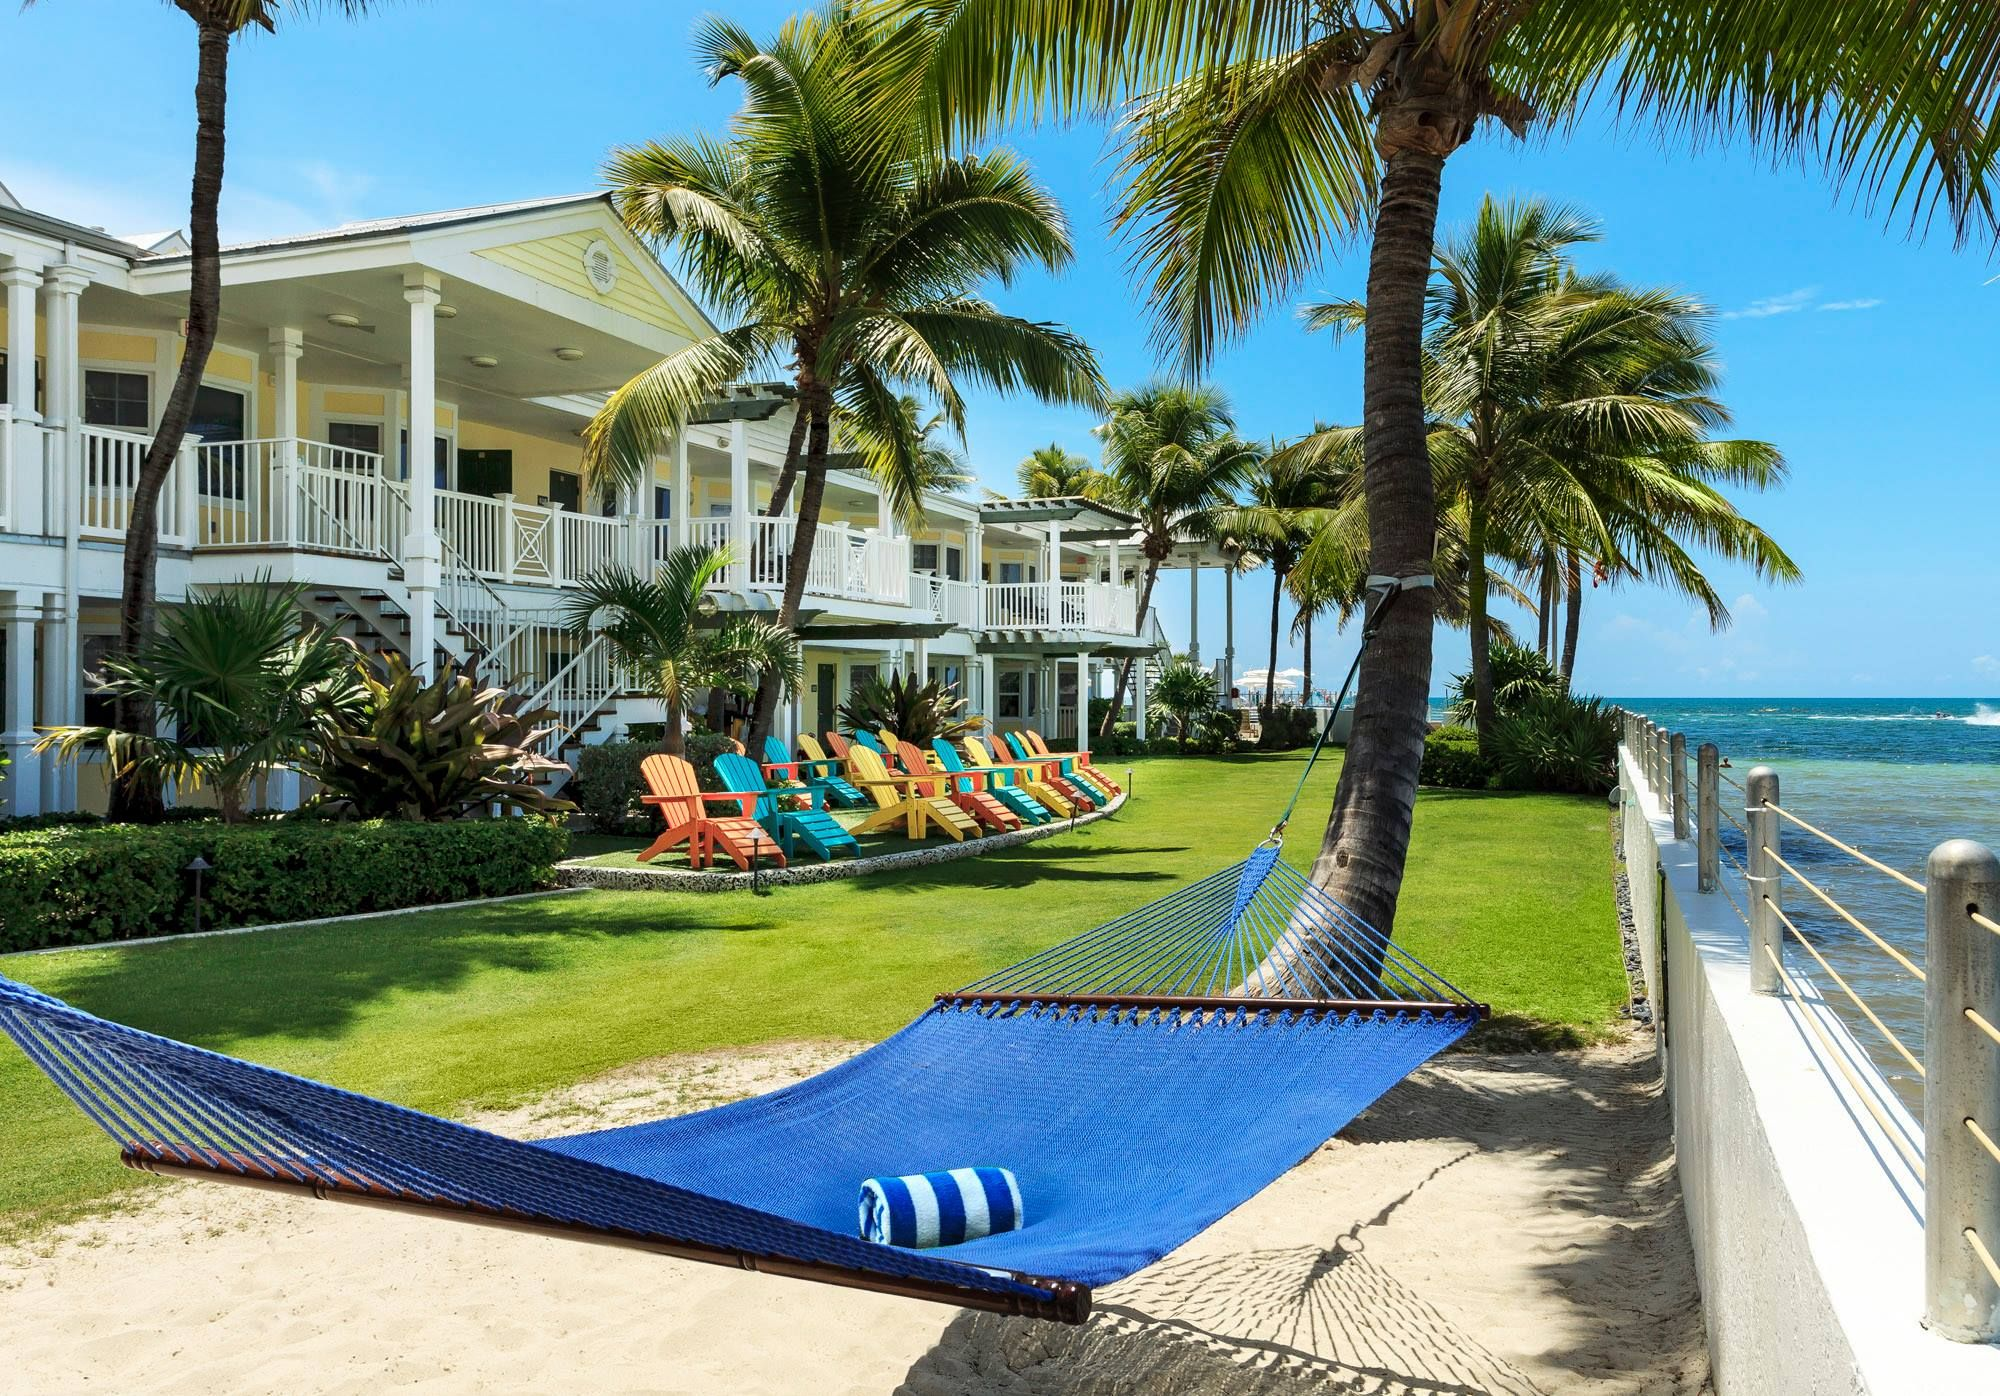 Southernmost On The Beach Hotel Key West Key West Resorts